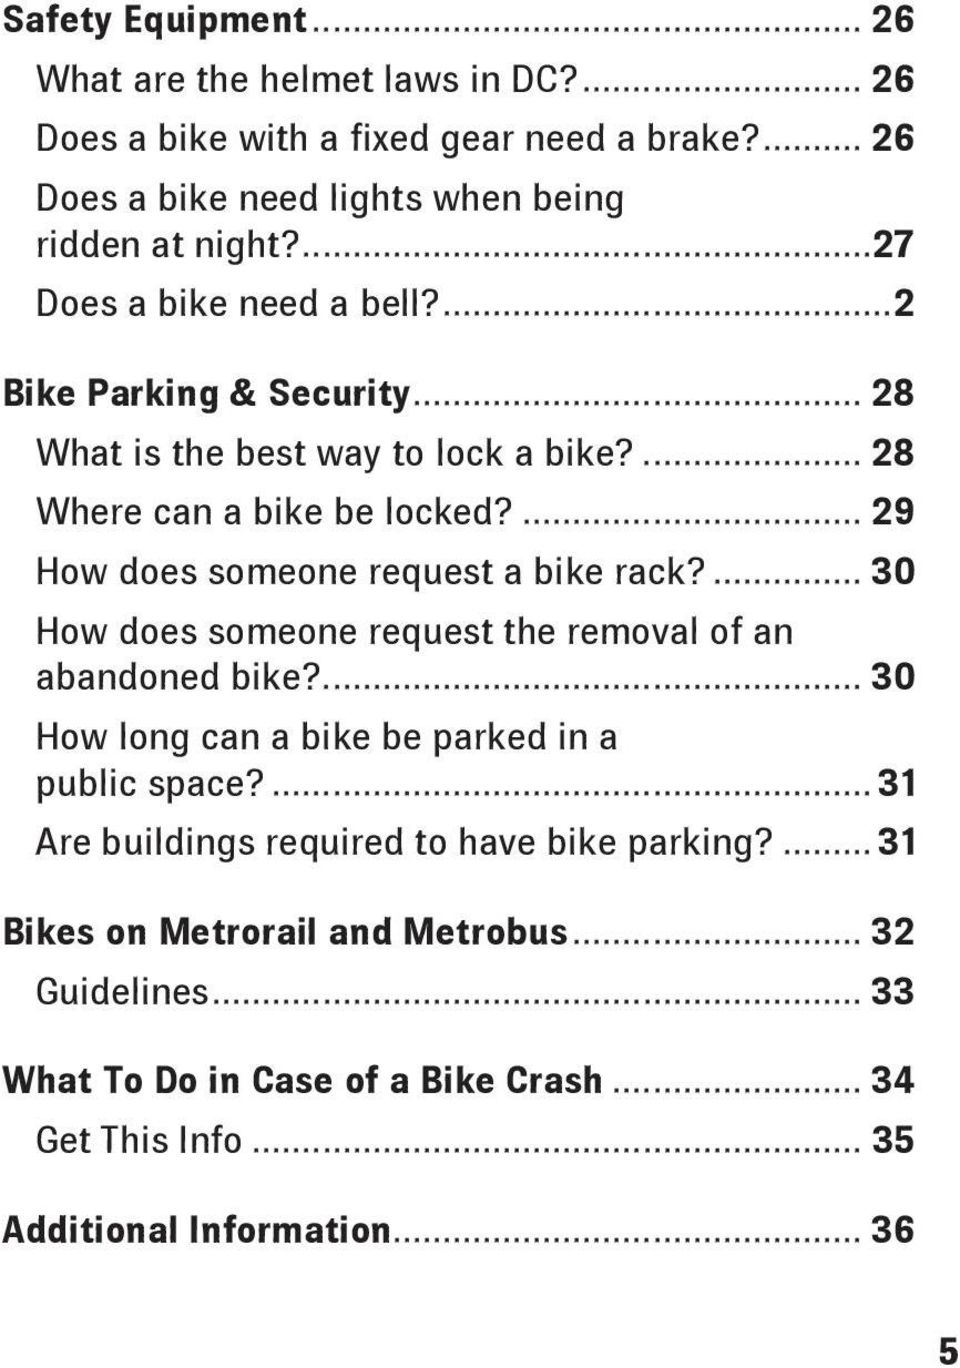 ... 29 How does someone request a bike rack?... 30 How does someone request the removal of an abandoned bike?... 30 How long can a bike be parked in a public space?